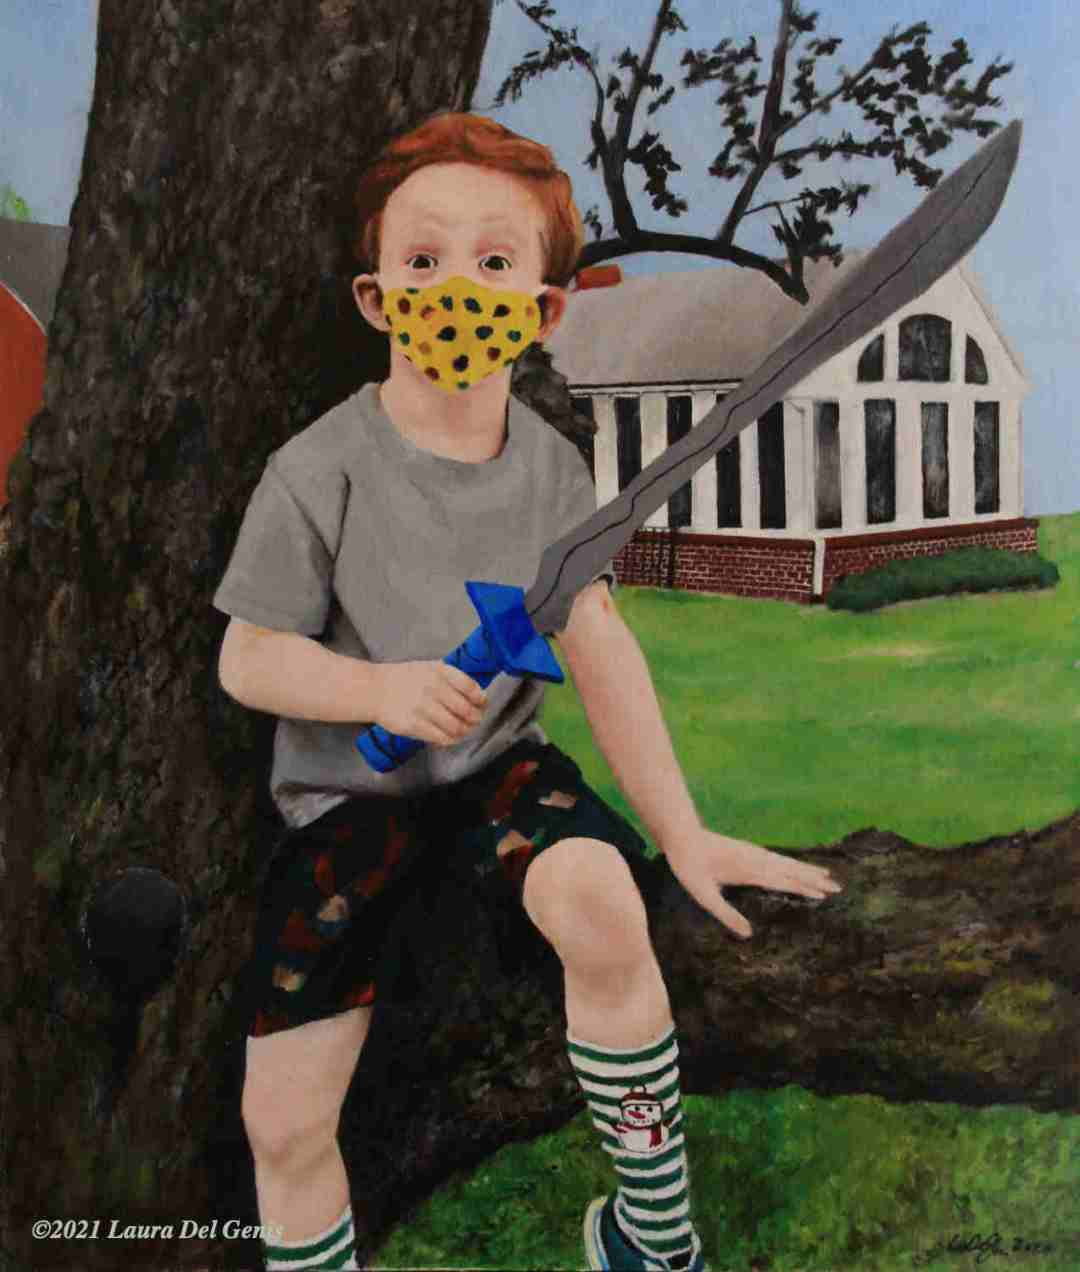 'The Masked Avenger' oil portrait commission of a masked boy sitting on a tree limb brandishing a toy sword. (Lori Del Genis, 2021)